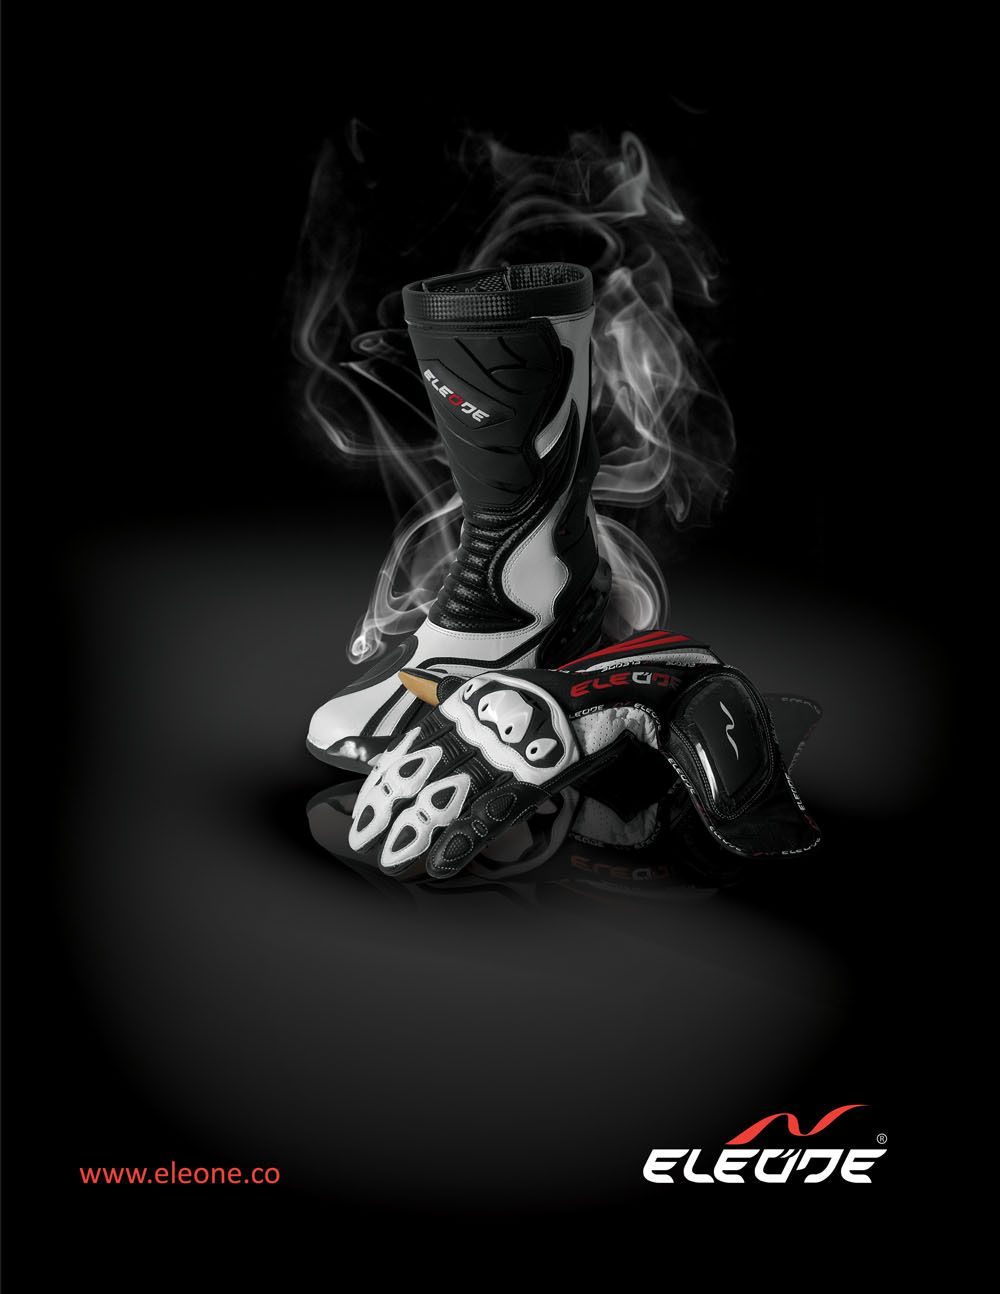 Motorcycle gloves distributor - Catalog 2013 Title Available At Www Eleone Co Looking For Distributors And Bulky